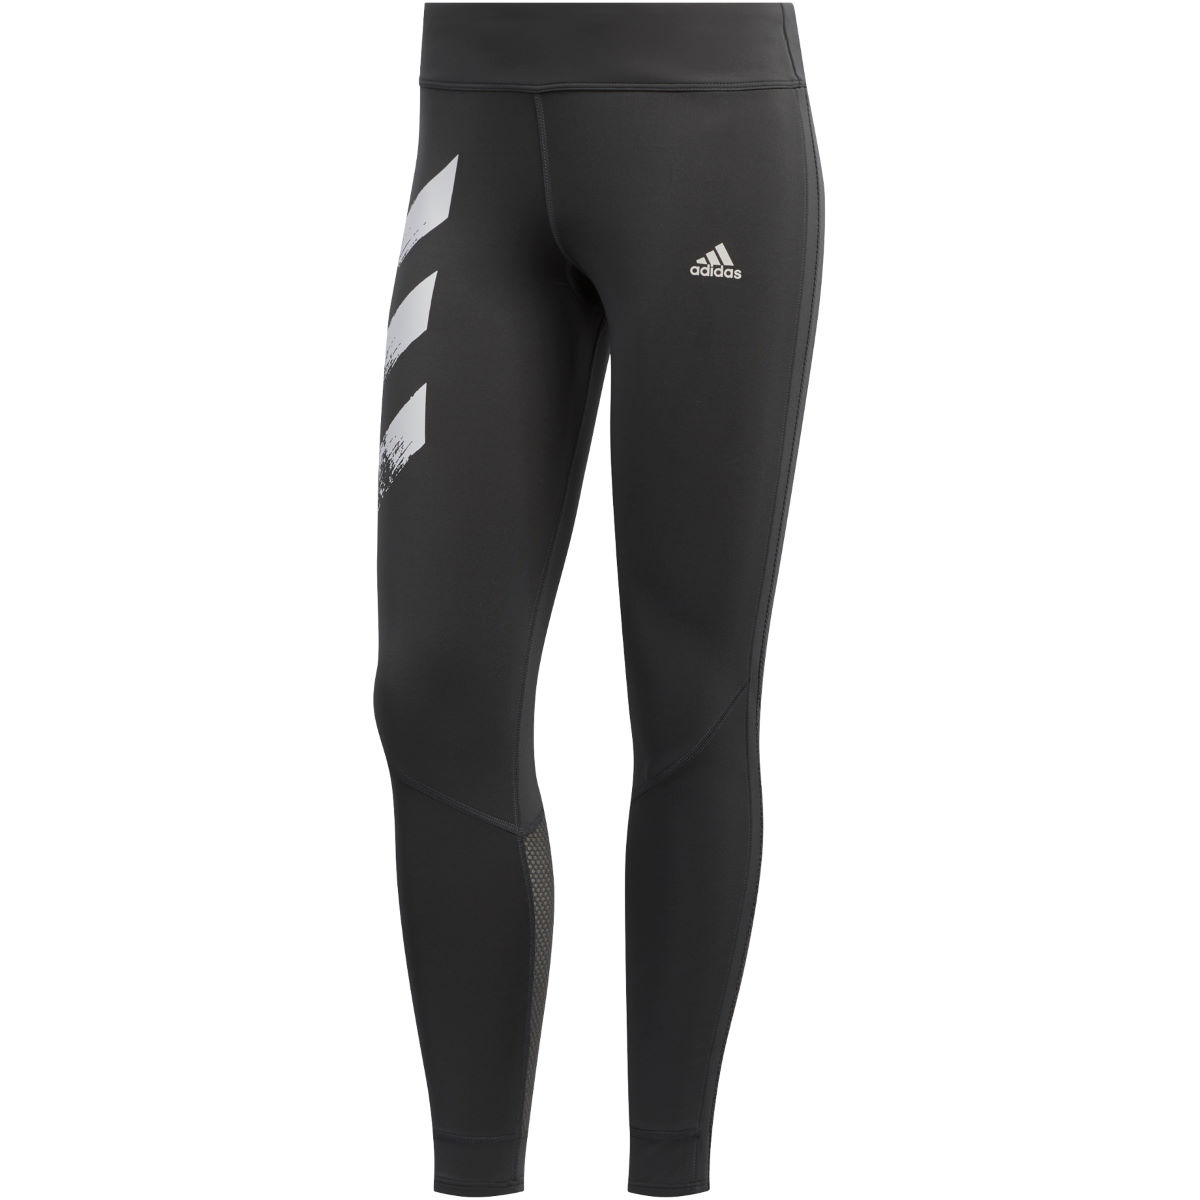 Oriental Montaña Kilauea Venta anticipada  Wiggle | adidas Women's Own The Run PB Tight | Tights